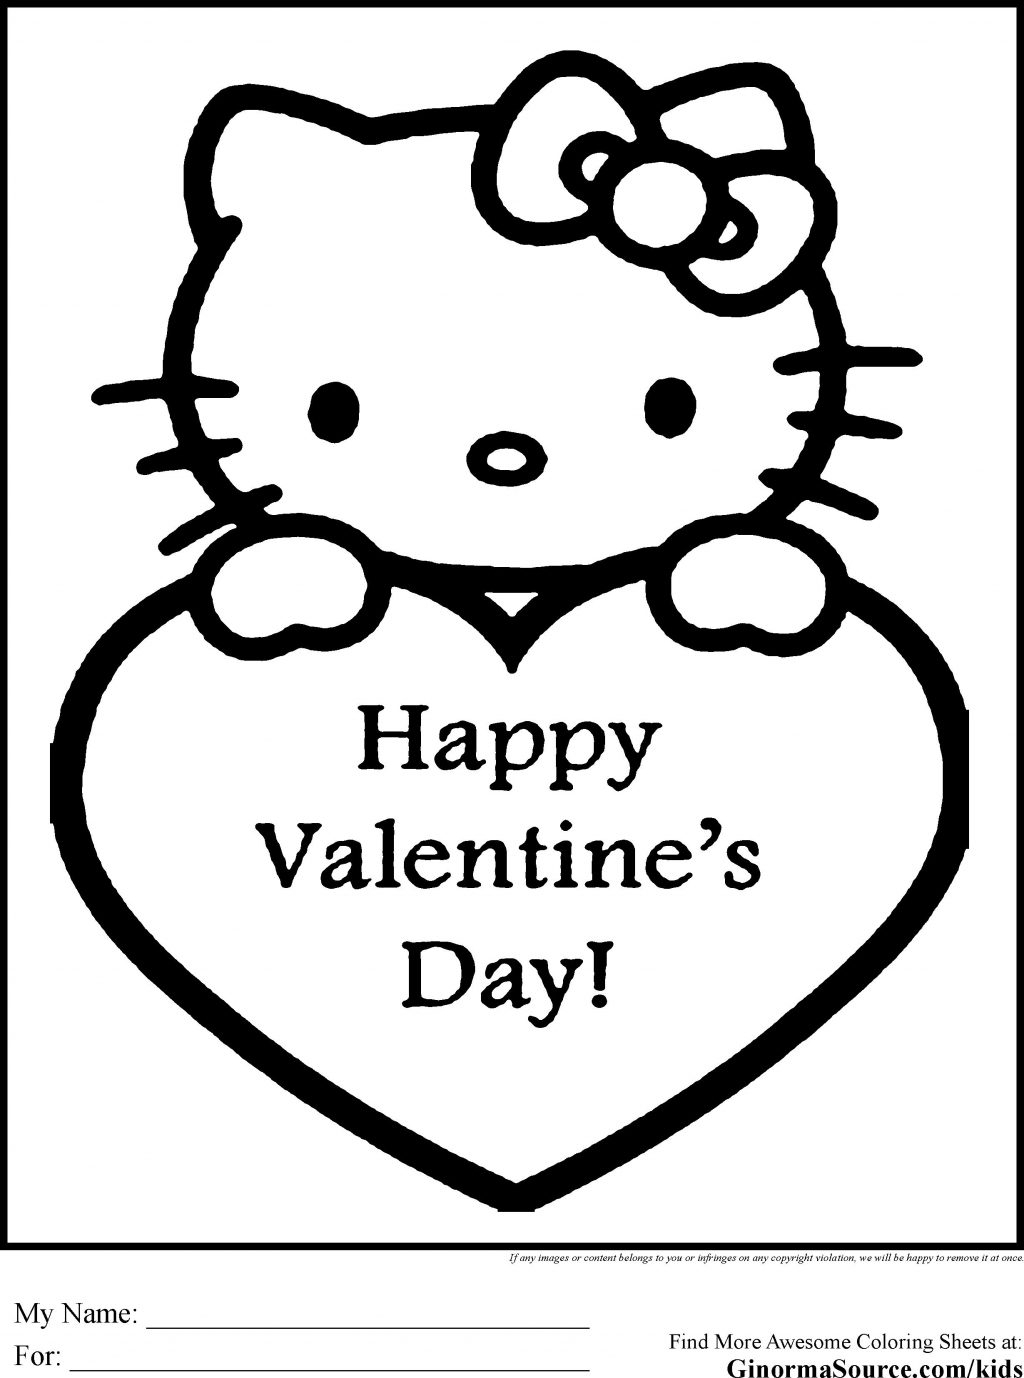 Coloring Pages ~ Coloring Pages Free Valentine For Kidsable Disney - Free Printable Disney Valentine Coloring Pages